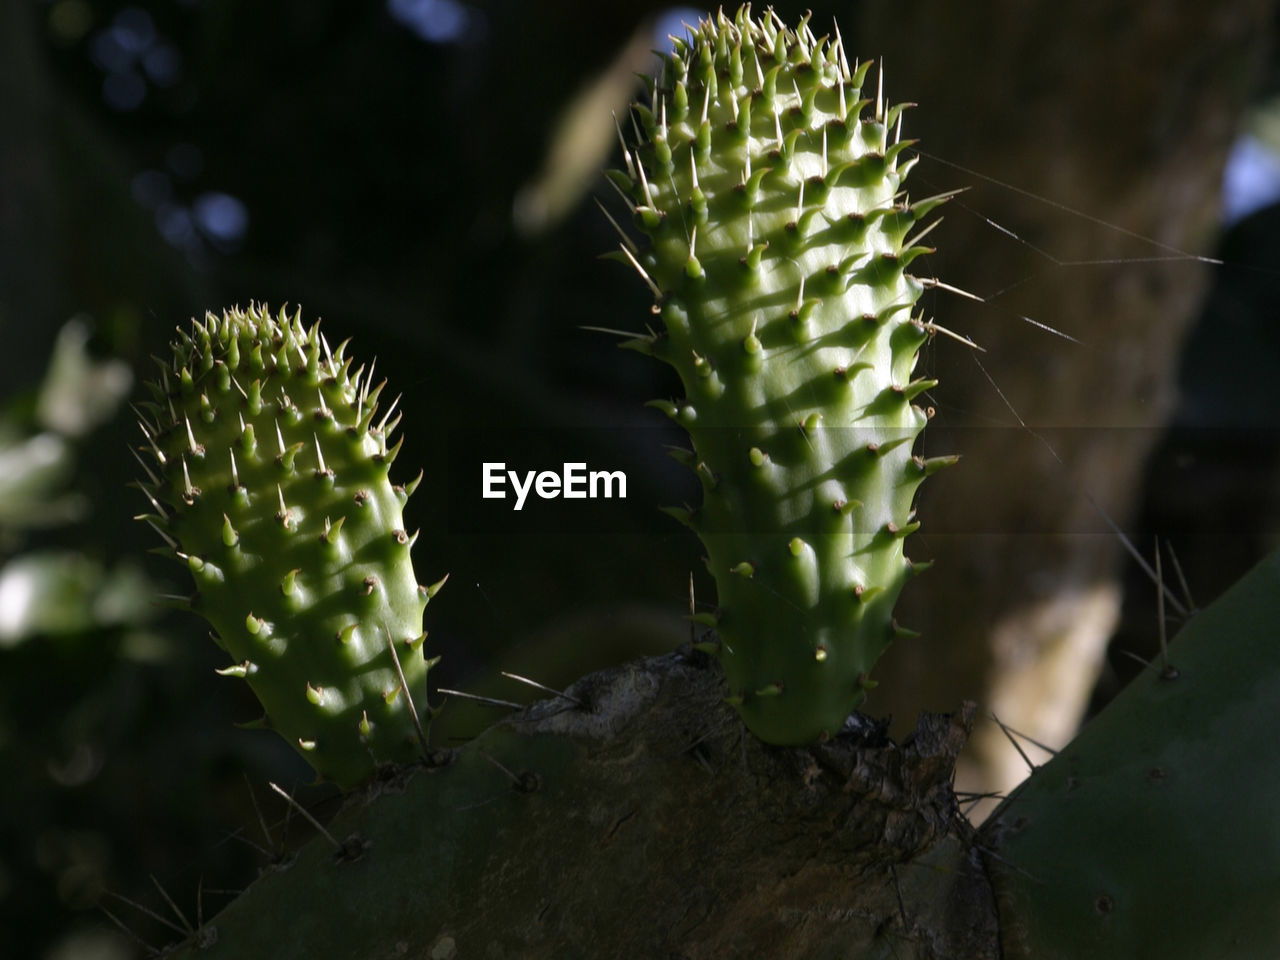 growth, plant, green color, succulent plant, cactus, close-up, beauty in nature, no people, thorn, day, nature, selective focus, focus on foreground, spiky, spiked, freshness, sunlight, sharp, outdoors, flower, arid climate